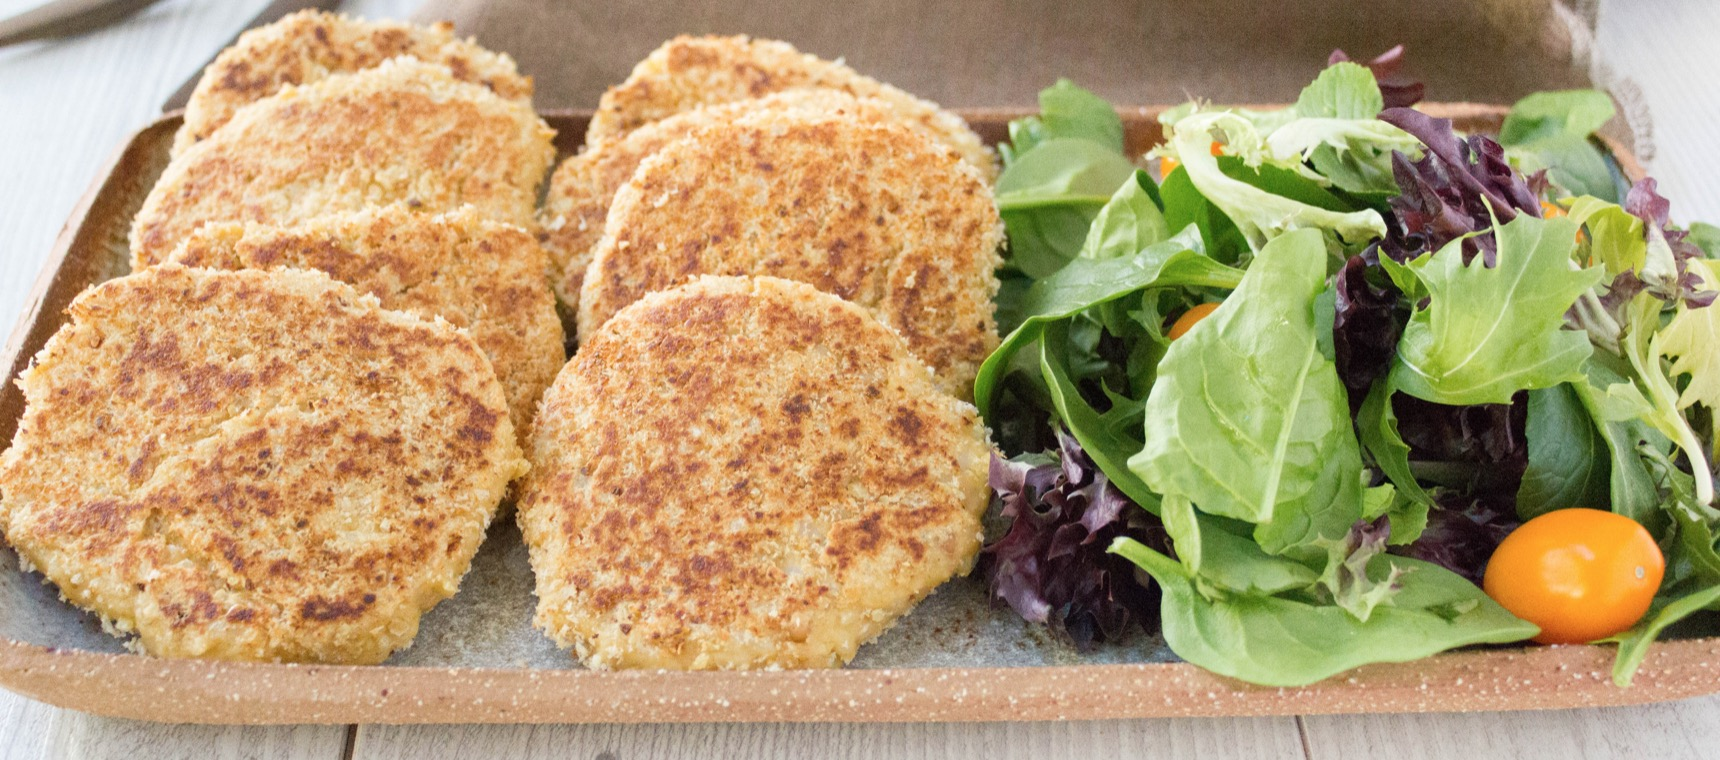 Chickpea and Peanut Butter Patties